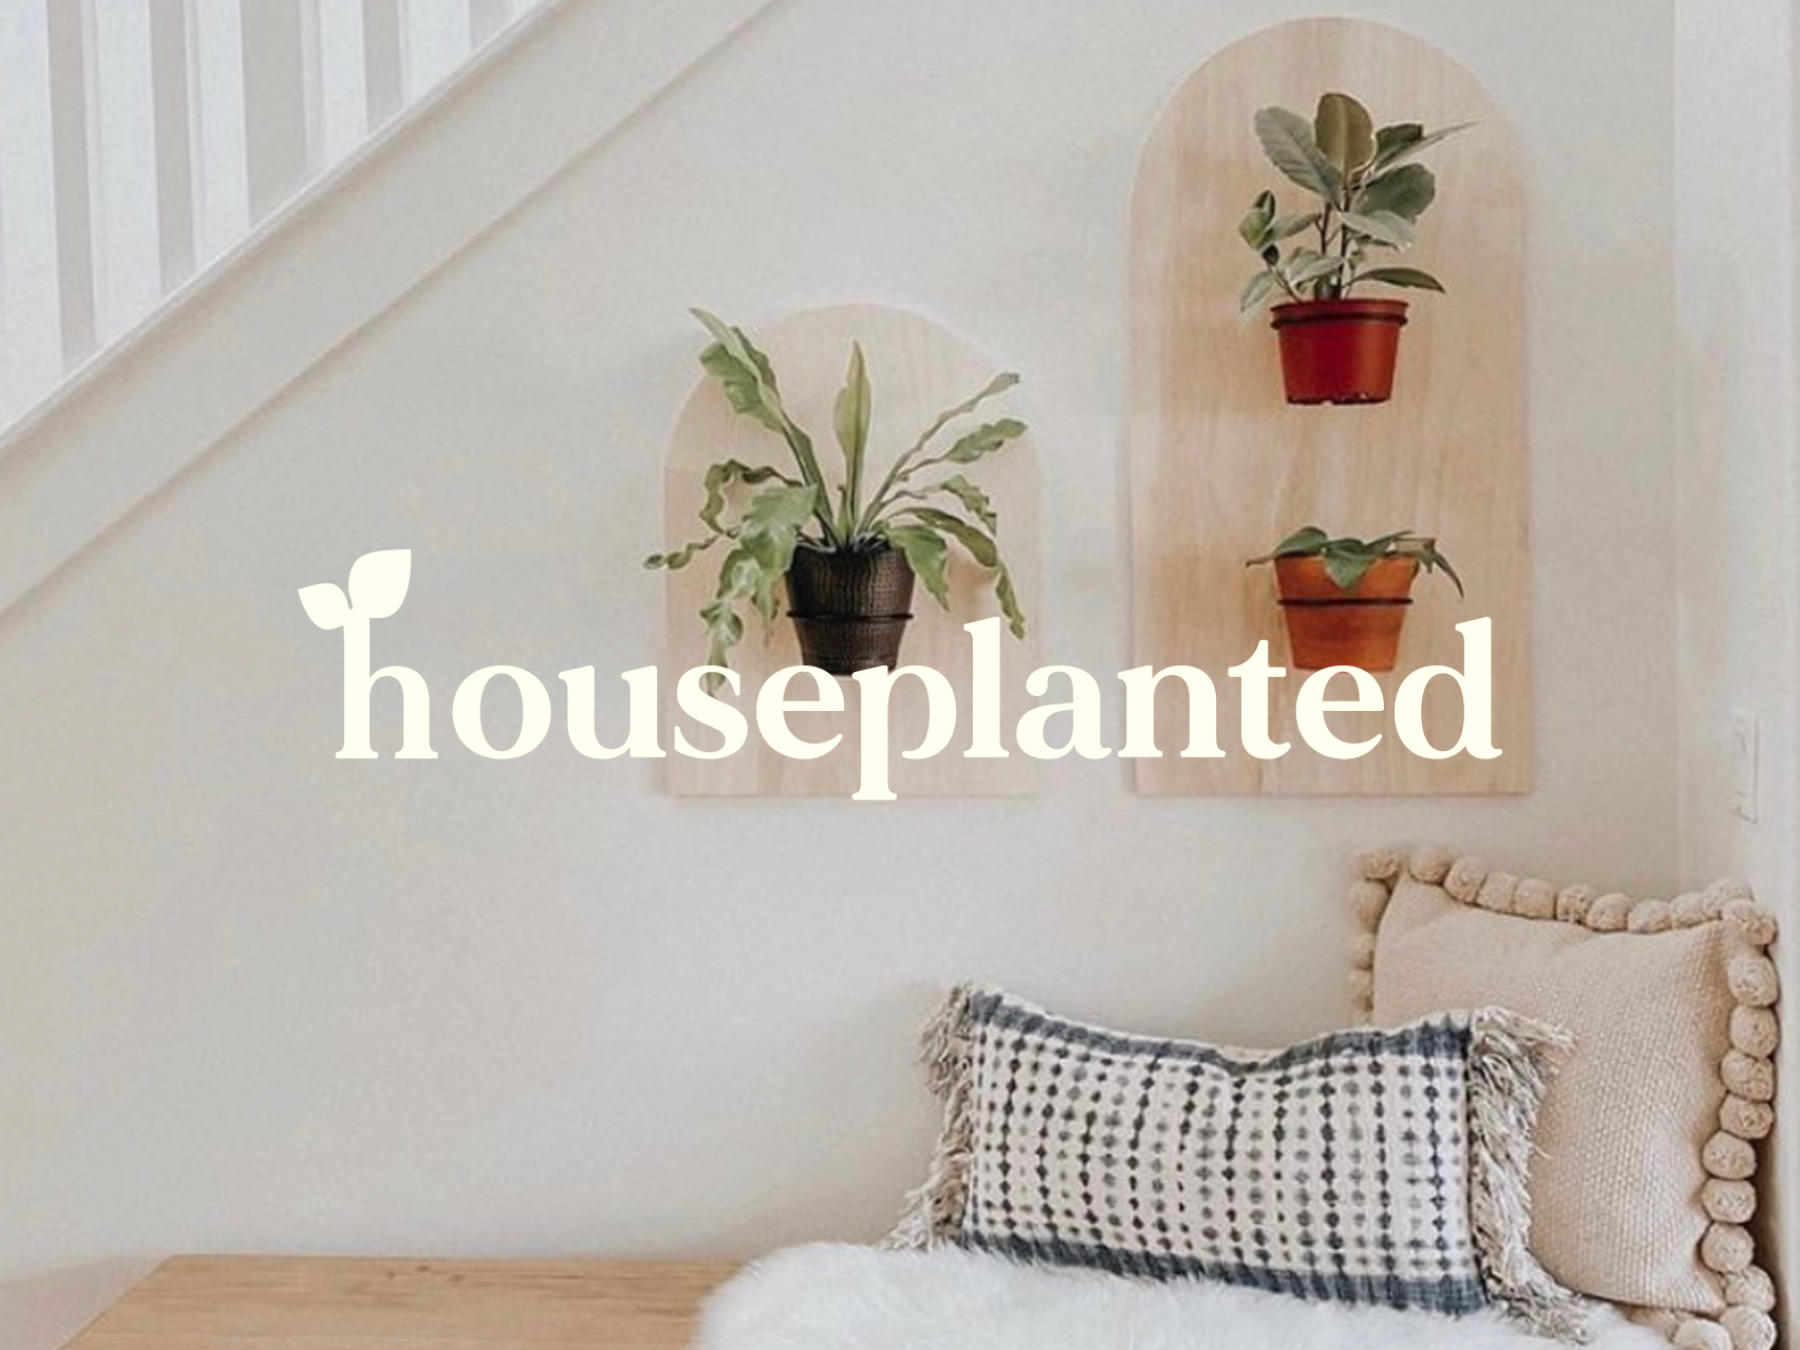 Family Owned Online Business, Houseplanted Delivers Popular Indoor Plants Nationwide